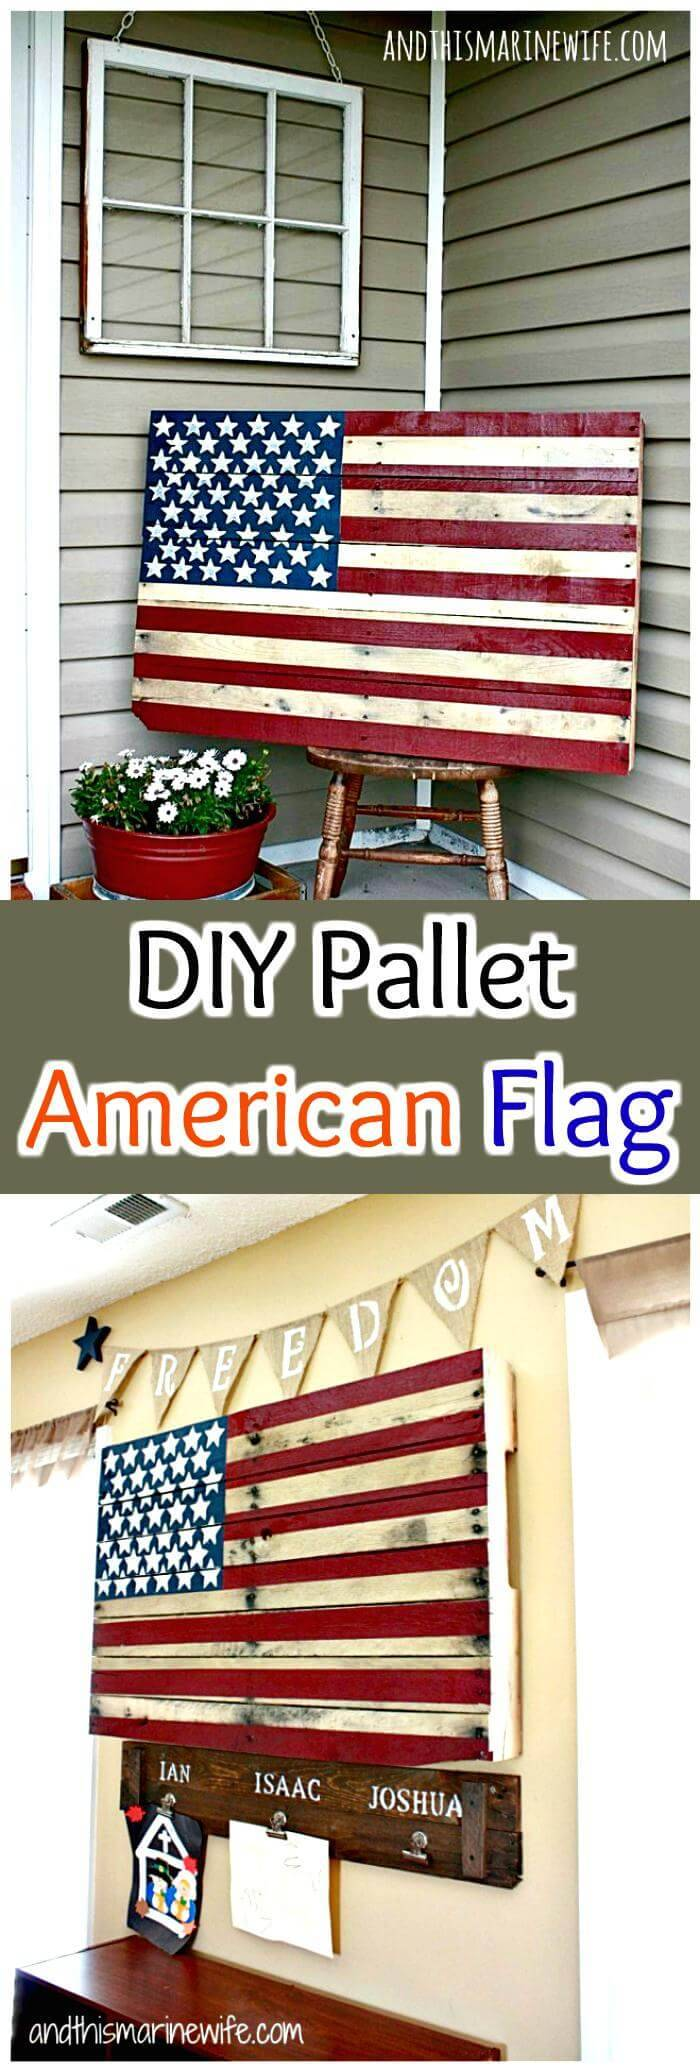 Wooden Pallet American Flag